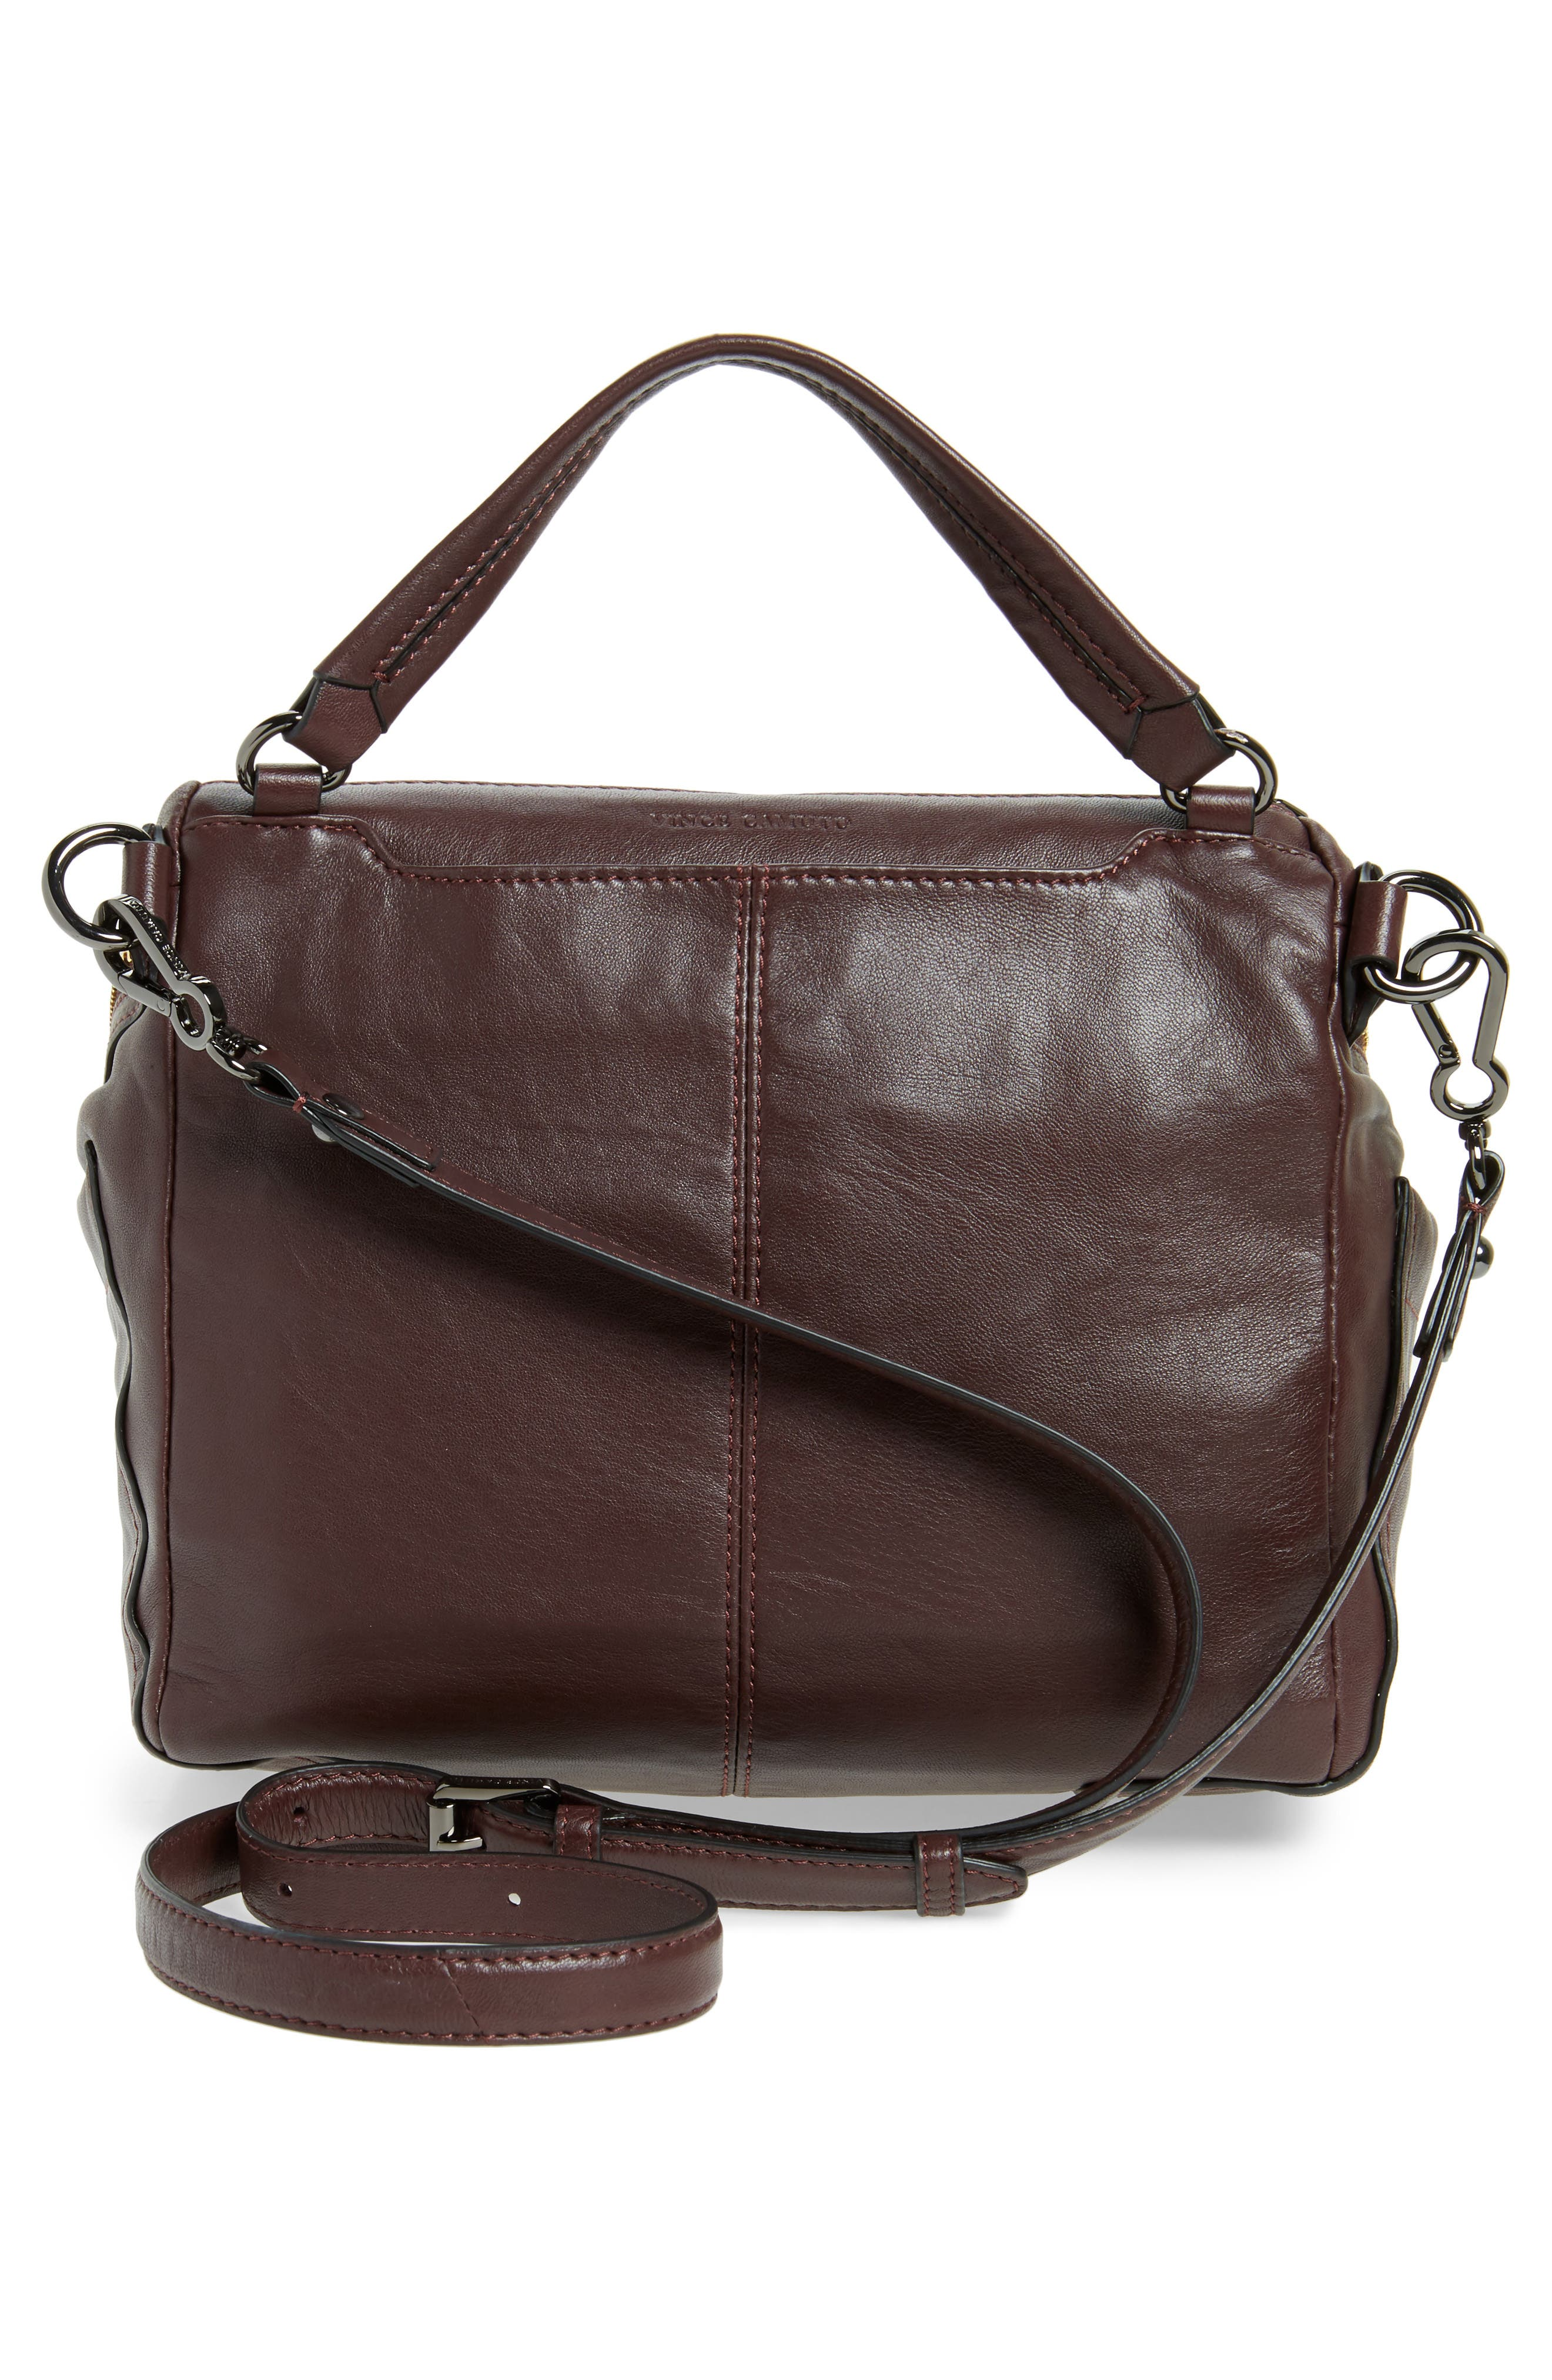 Large Patch Leather Crossbody Bag,                             Alternate thumbnail 3, color,                             Black Cherry